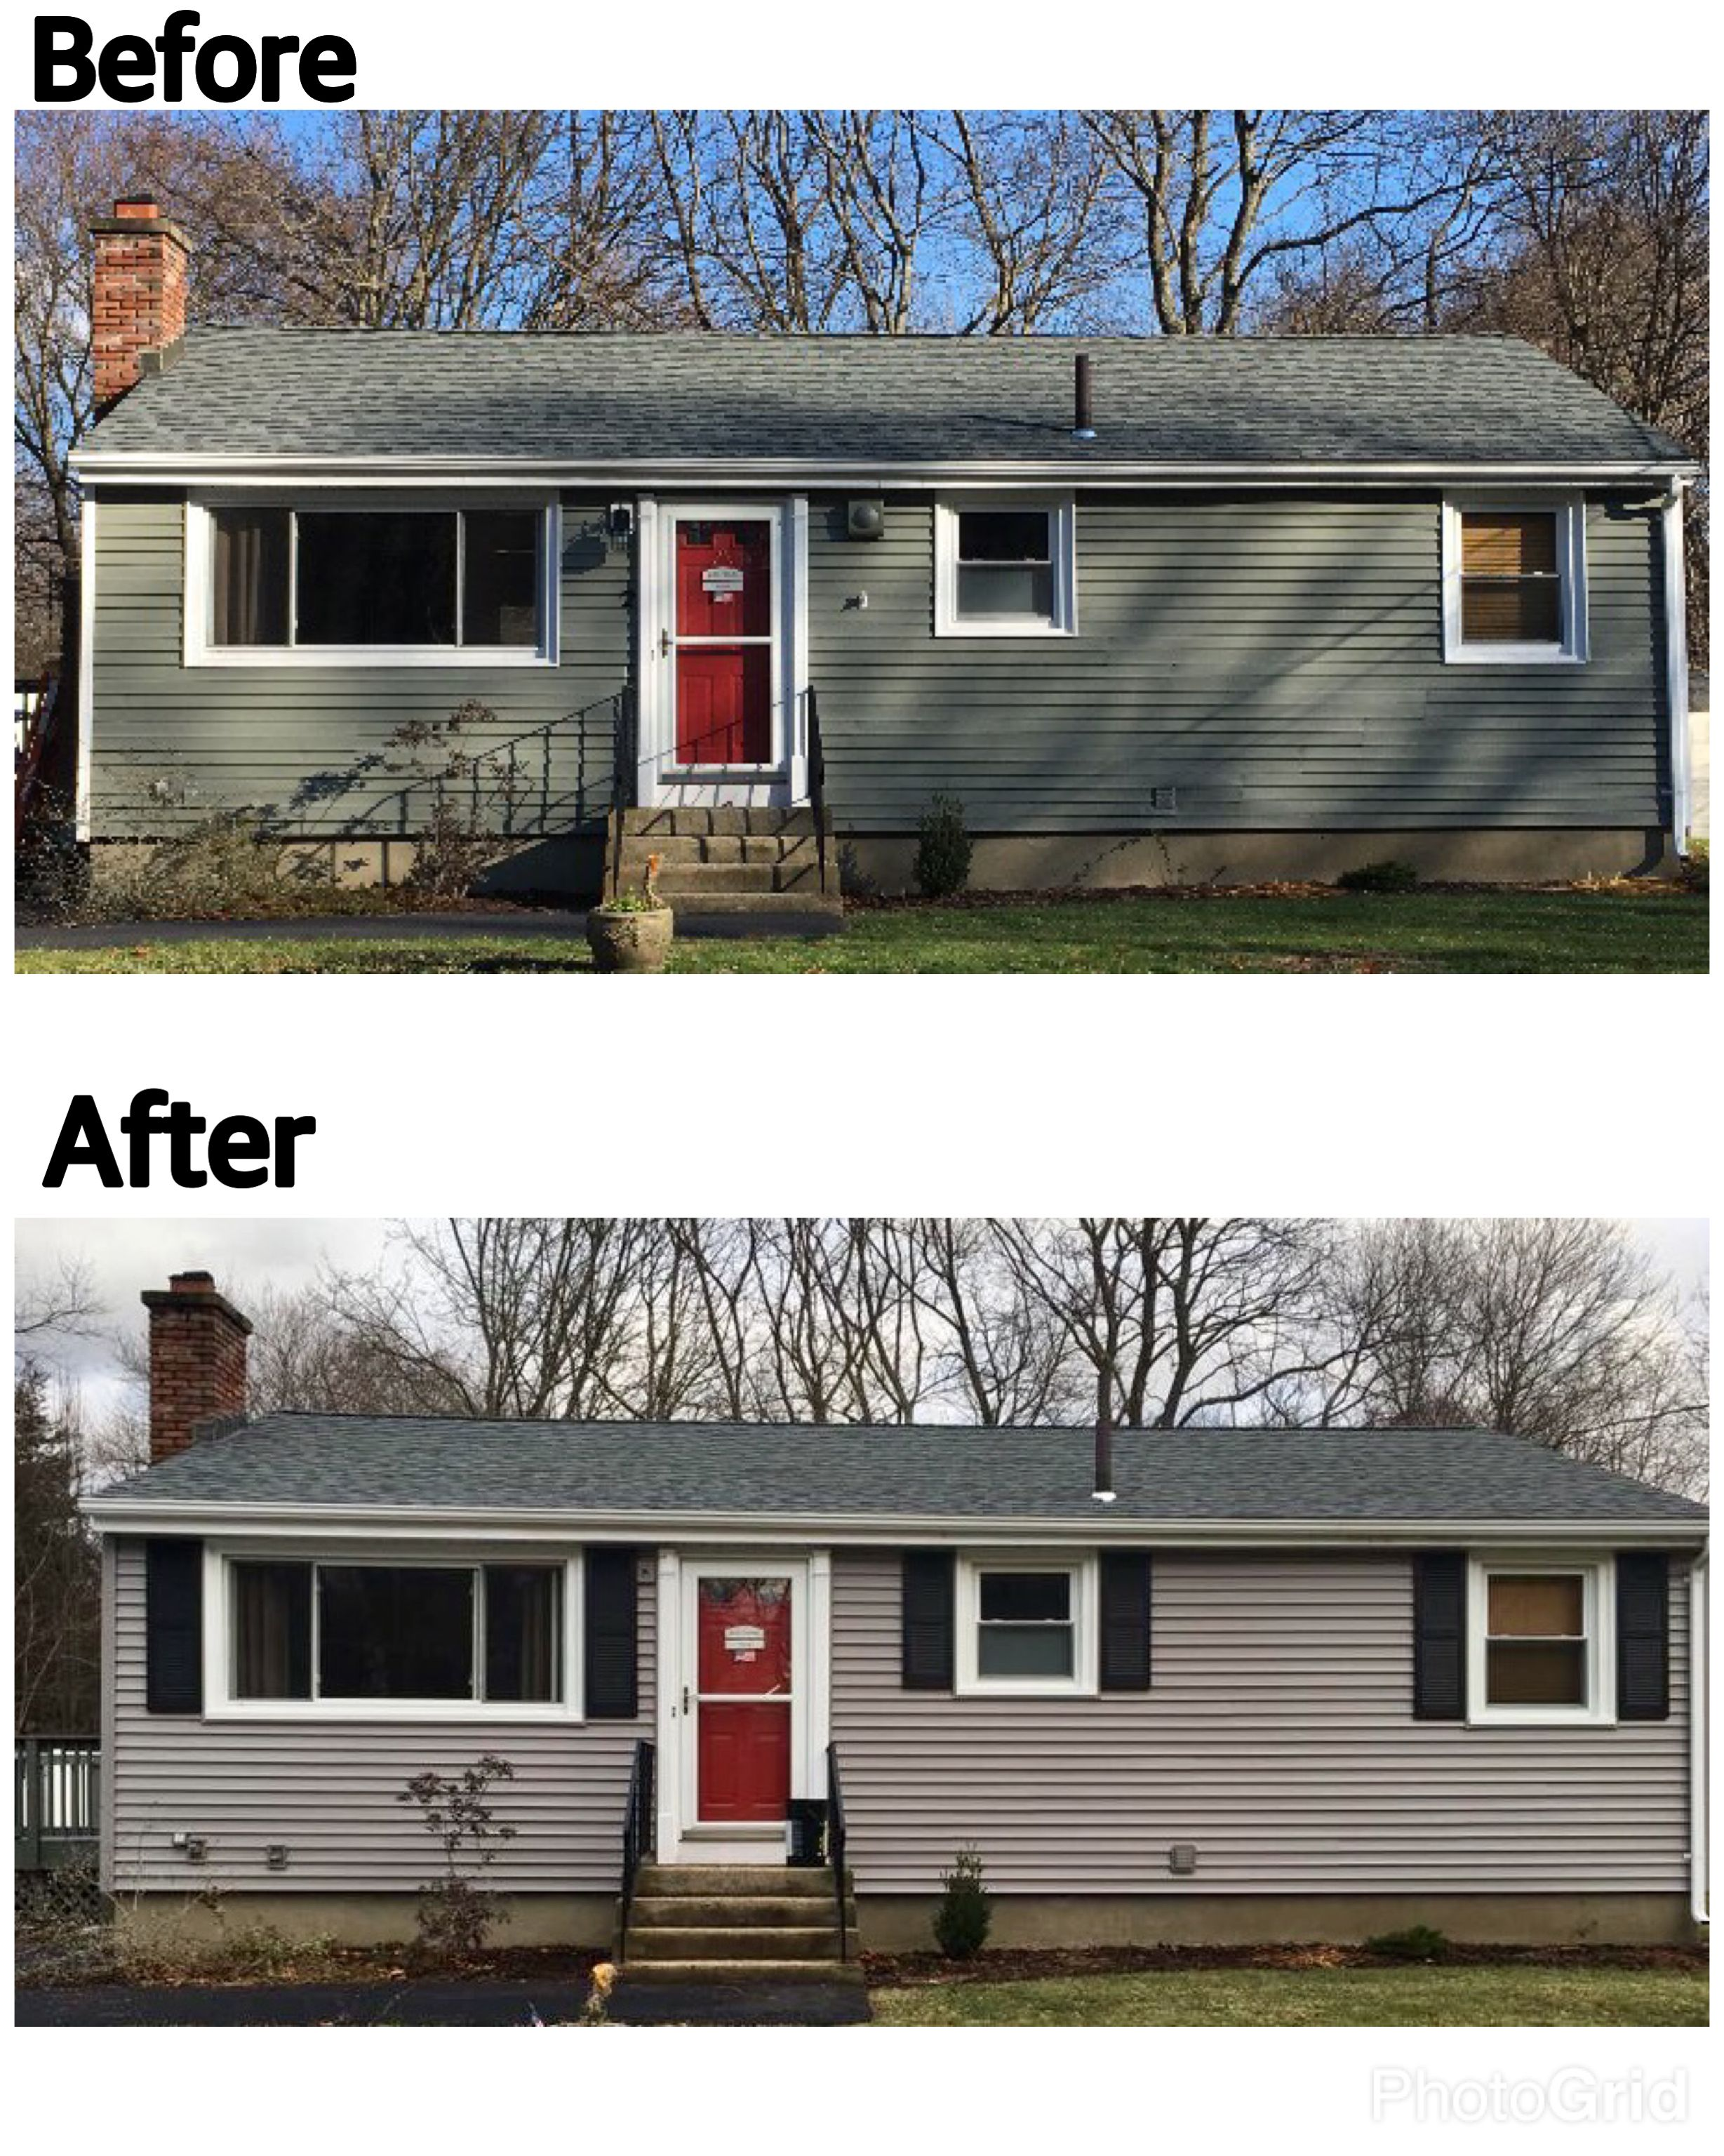 Before After Siding Project Using Plygem Siding In Harbor Grey And Certainteed Roofing In Granite Grey Vinyl Siding Exterior Colors Siding